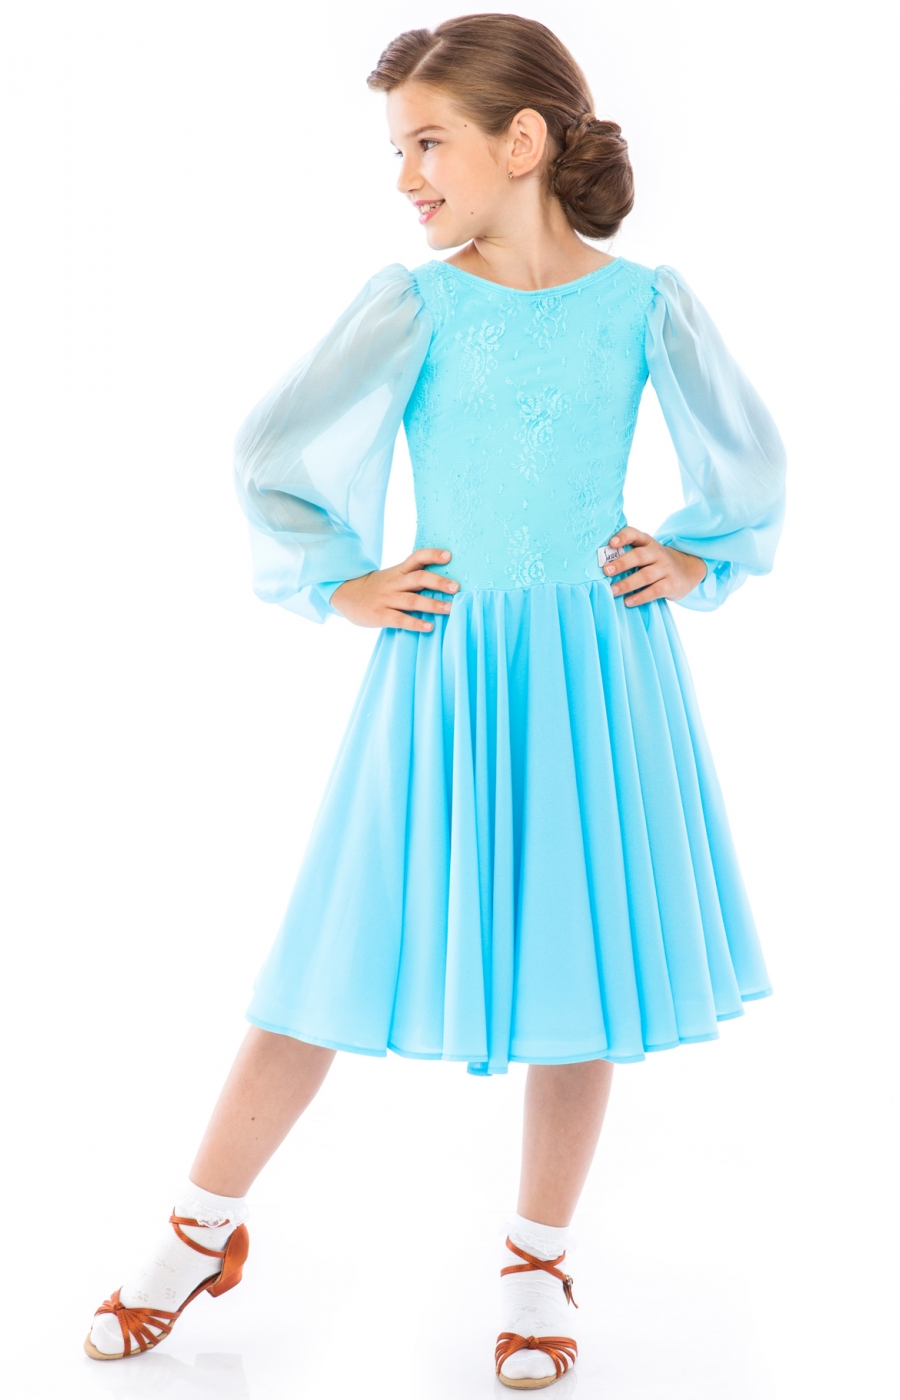 Teen Girl Juvenile Practice Ballroom Dress